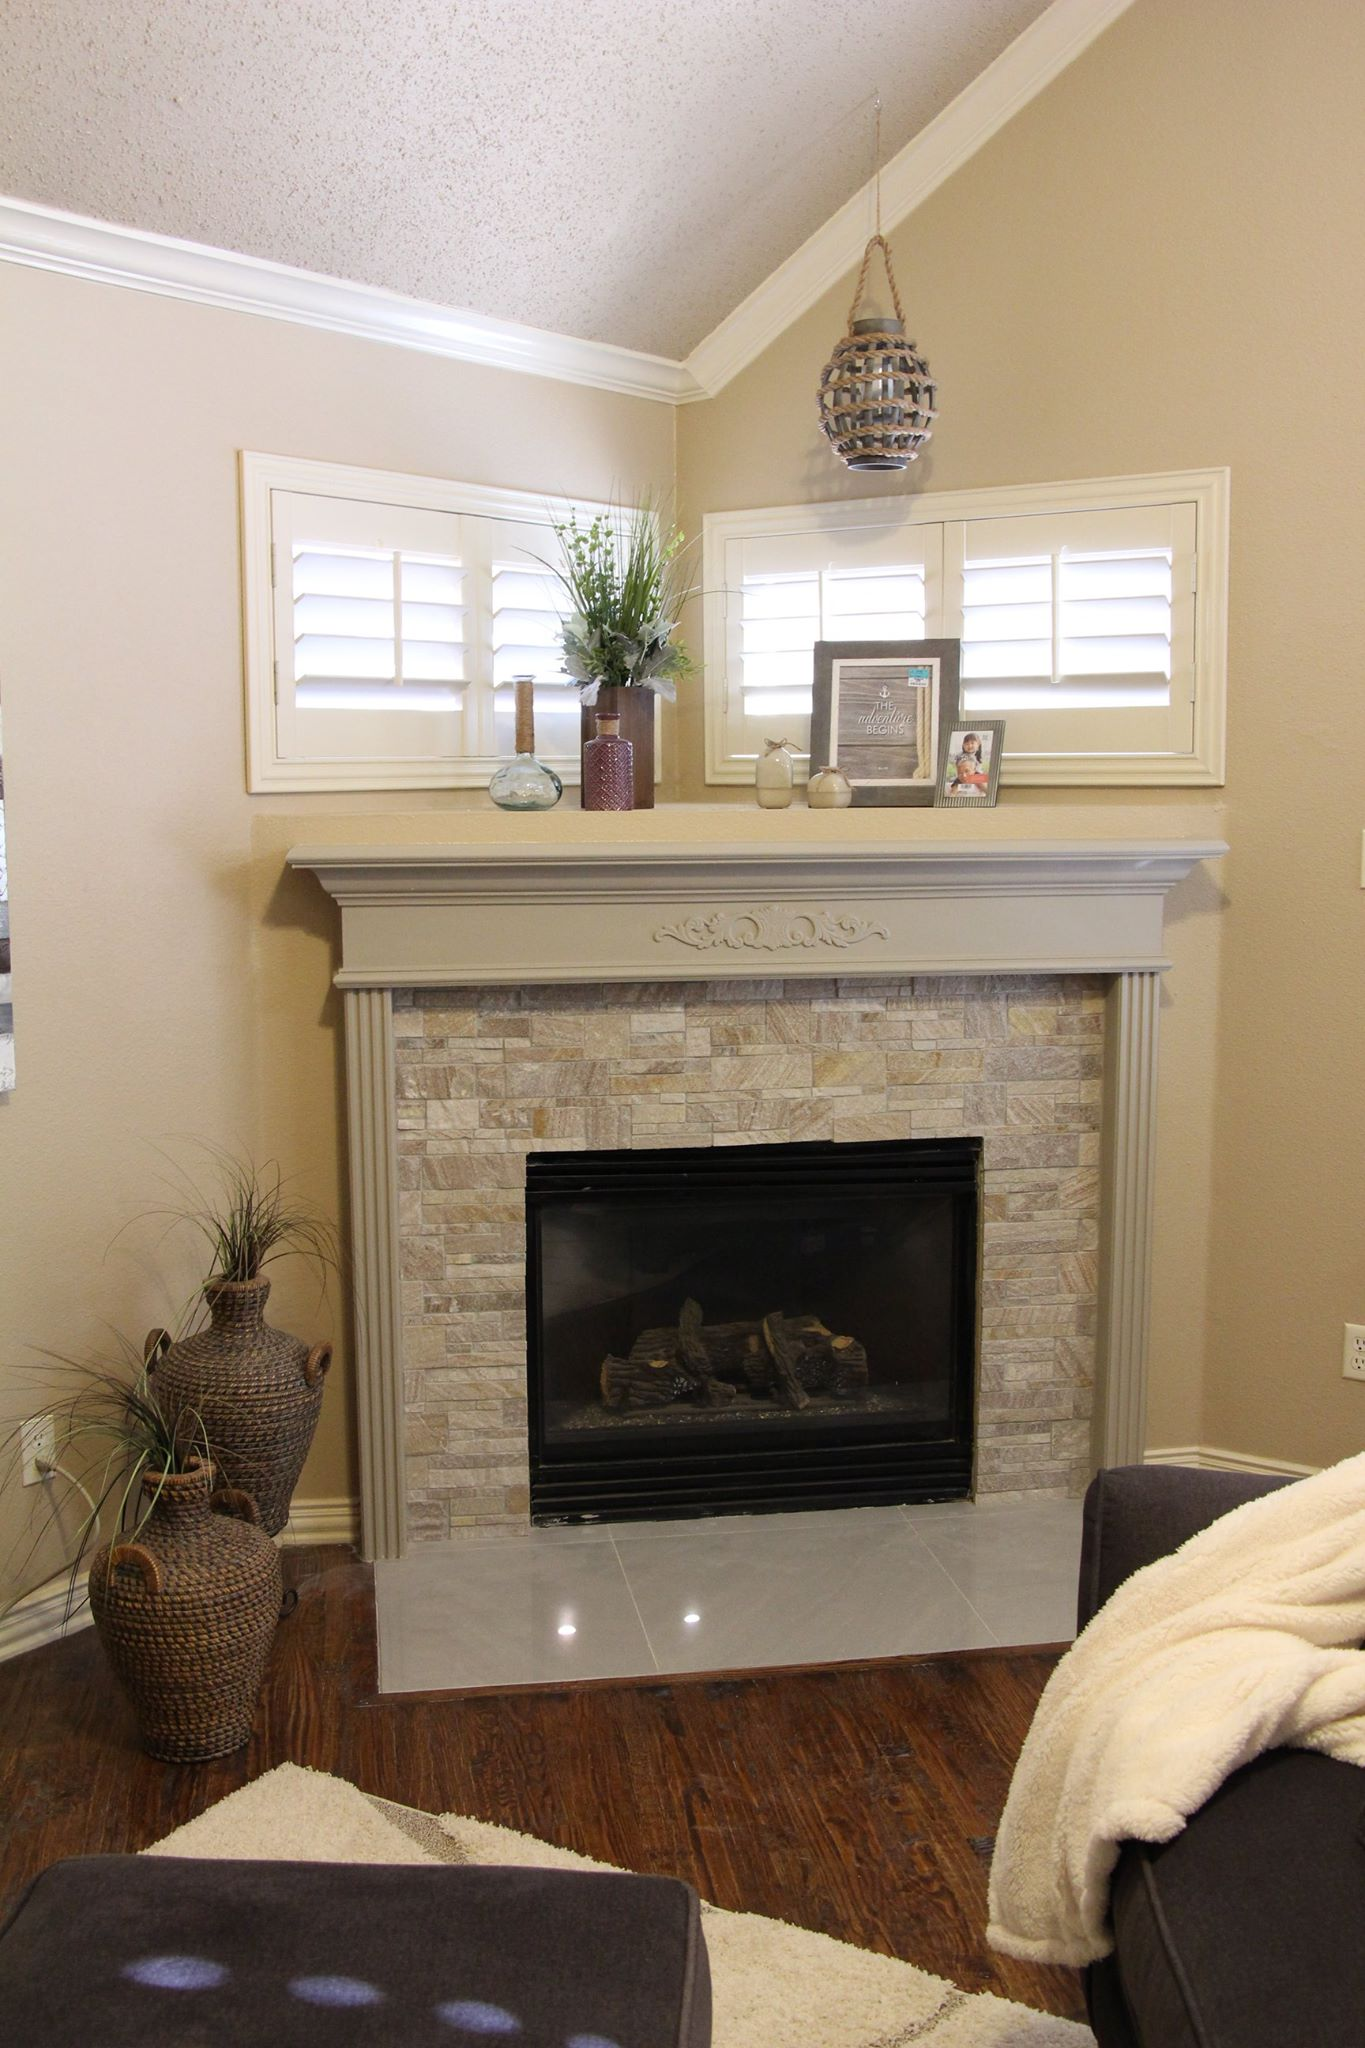 Full service Client:fireplace refresh, accessories, & styling